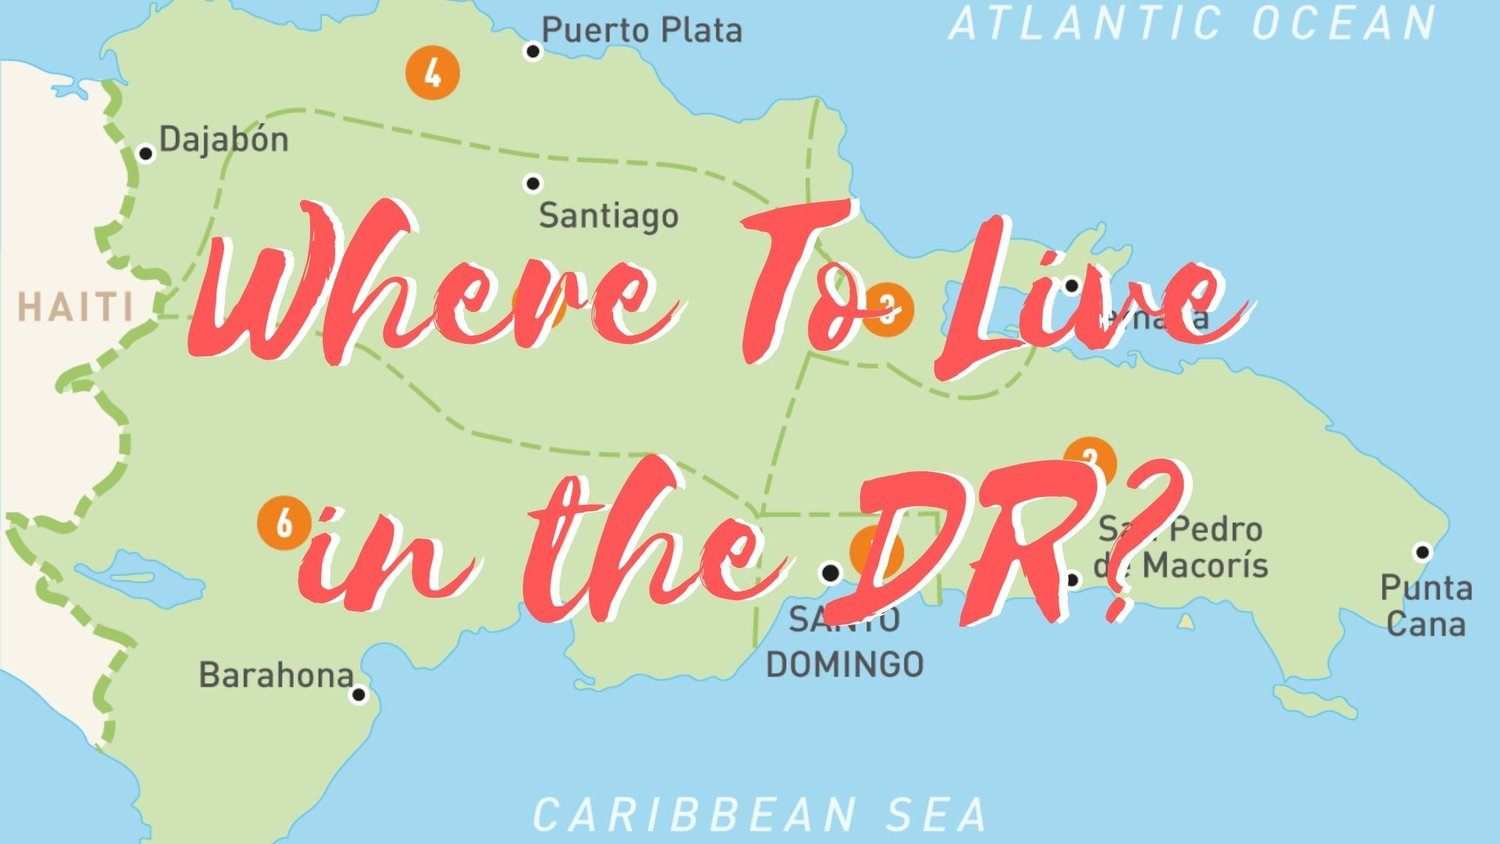 Where to live in the Dominican Republic? | Atlantique Sud on paraguay cities map, rhine river cities map, barbados cities map, trinidad cities map, senegal cities map, bahamas cities map, guam cities map, antarctic cities map, luxembourg cities map, south sudan cities map, serbia cities map, western asia cities map, slovakia cities map, united states of america cities map, latvia cities map, belarus cities map, newfoundland and labrador cities map, nova scotia cities map, chad cities map, tibet cities map,